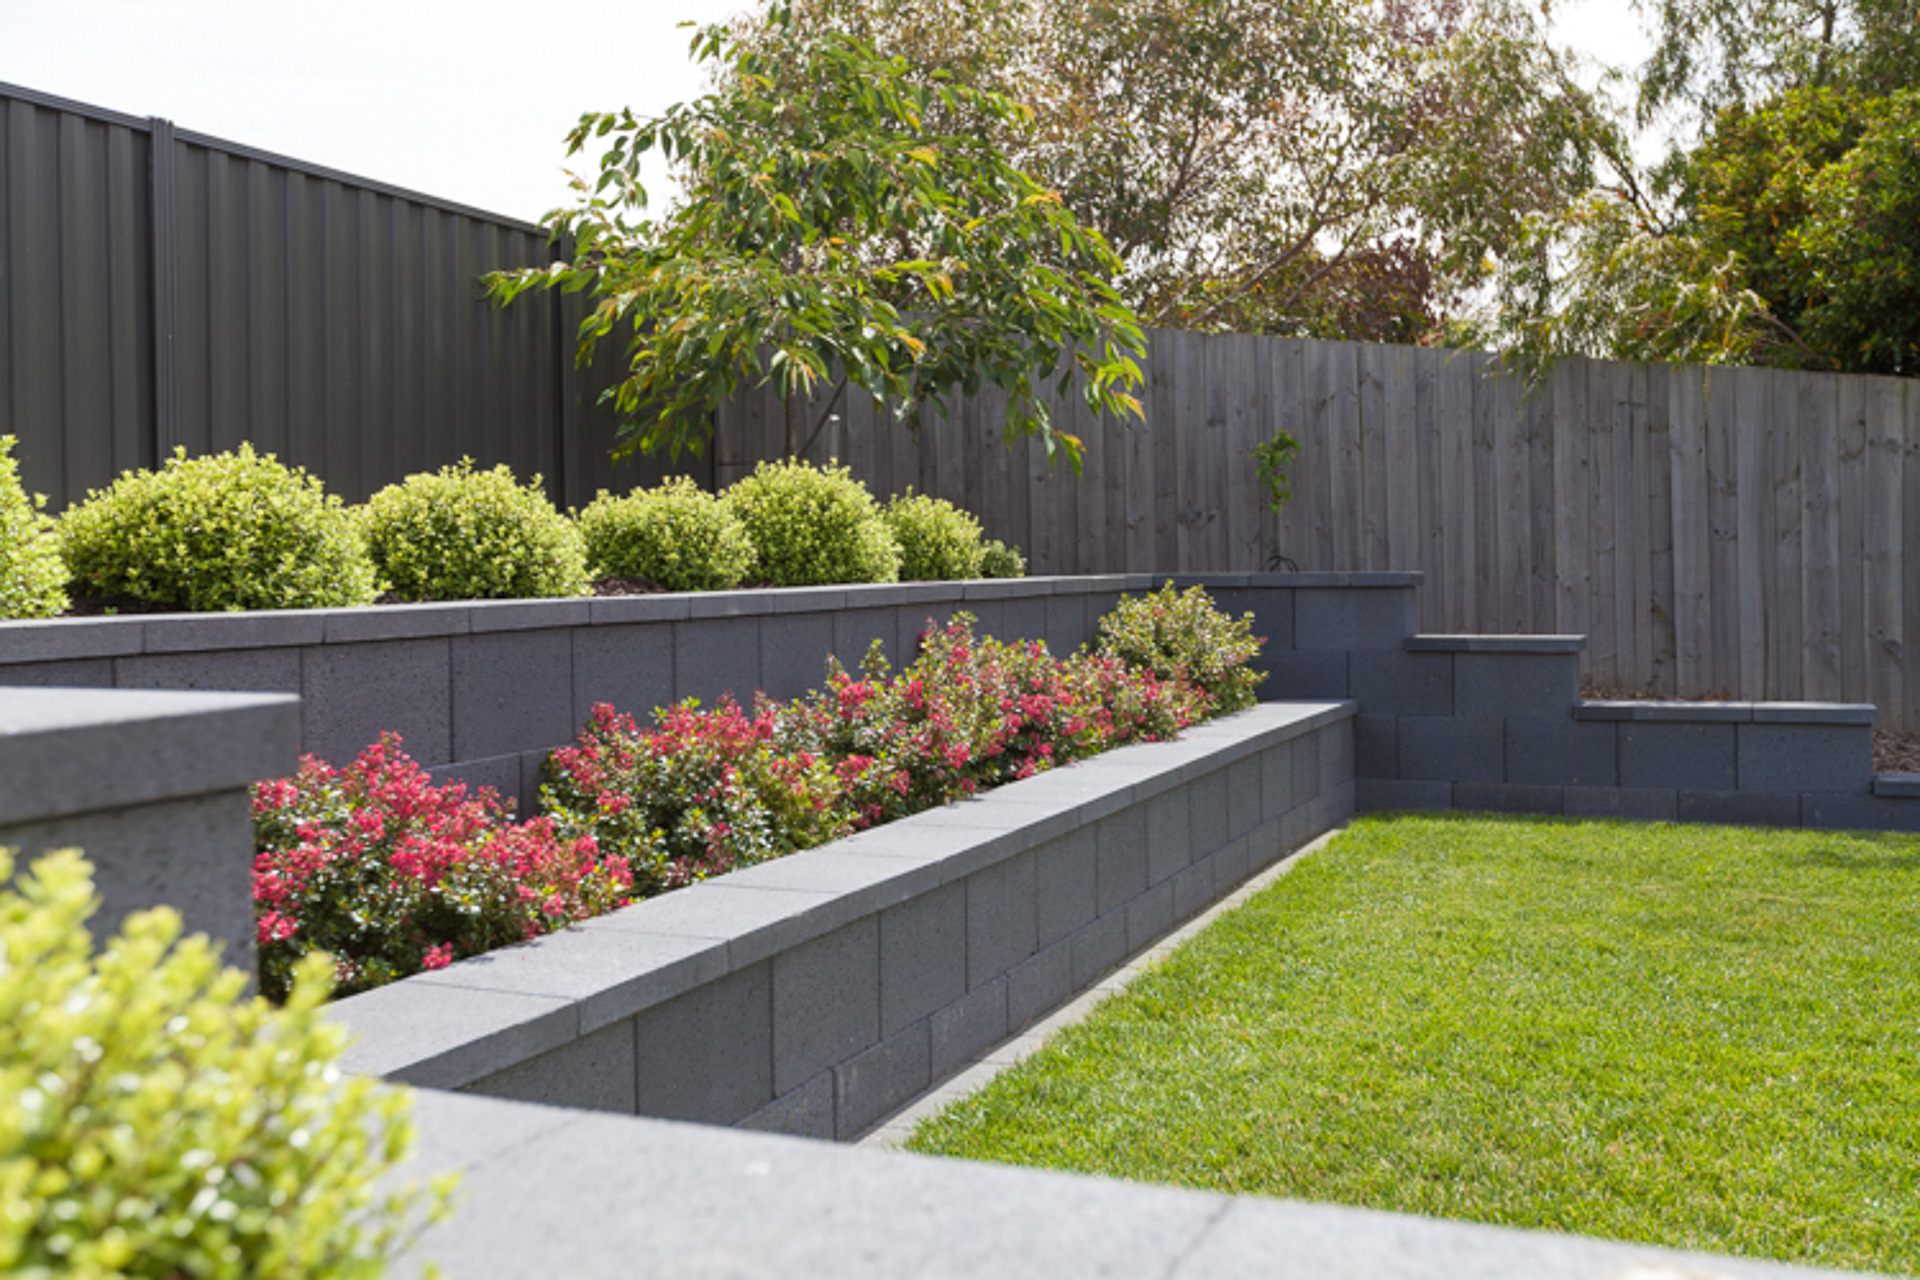 Retaining Walls - Andrew Nicholson Landscapes on Back Wall Garden Ideas id=51045